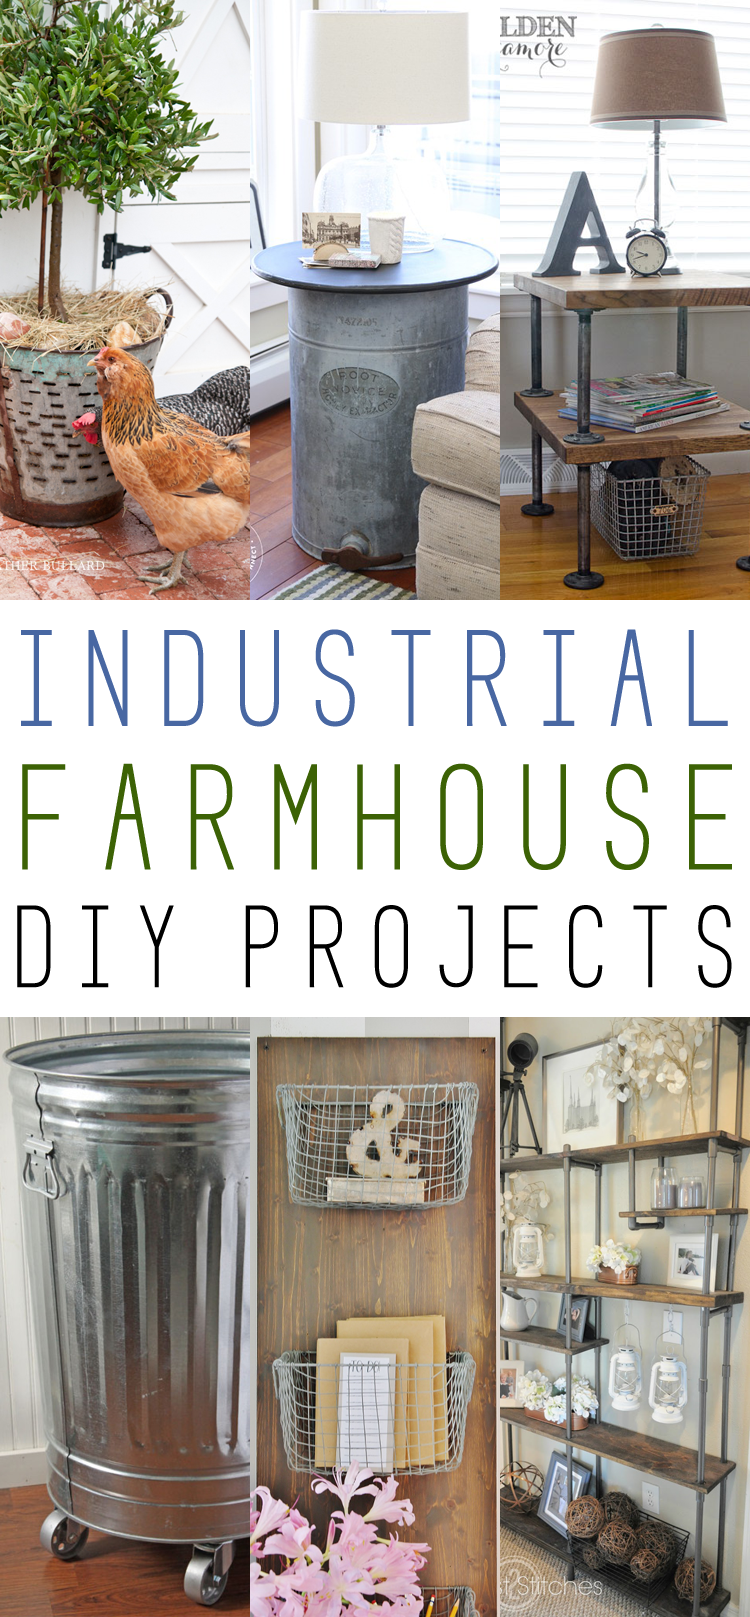 Farmhouse Fridays /// Industrial Farmhouse DIY Projects ...